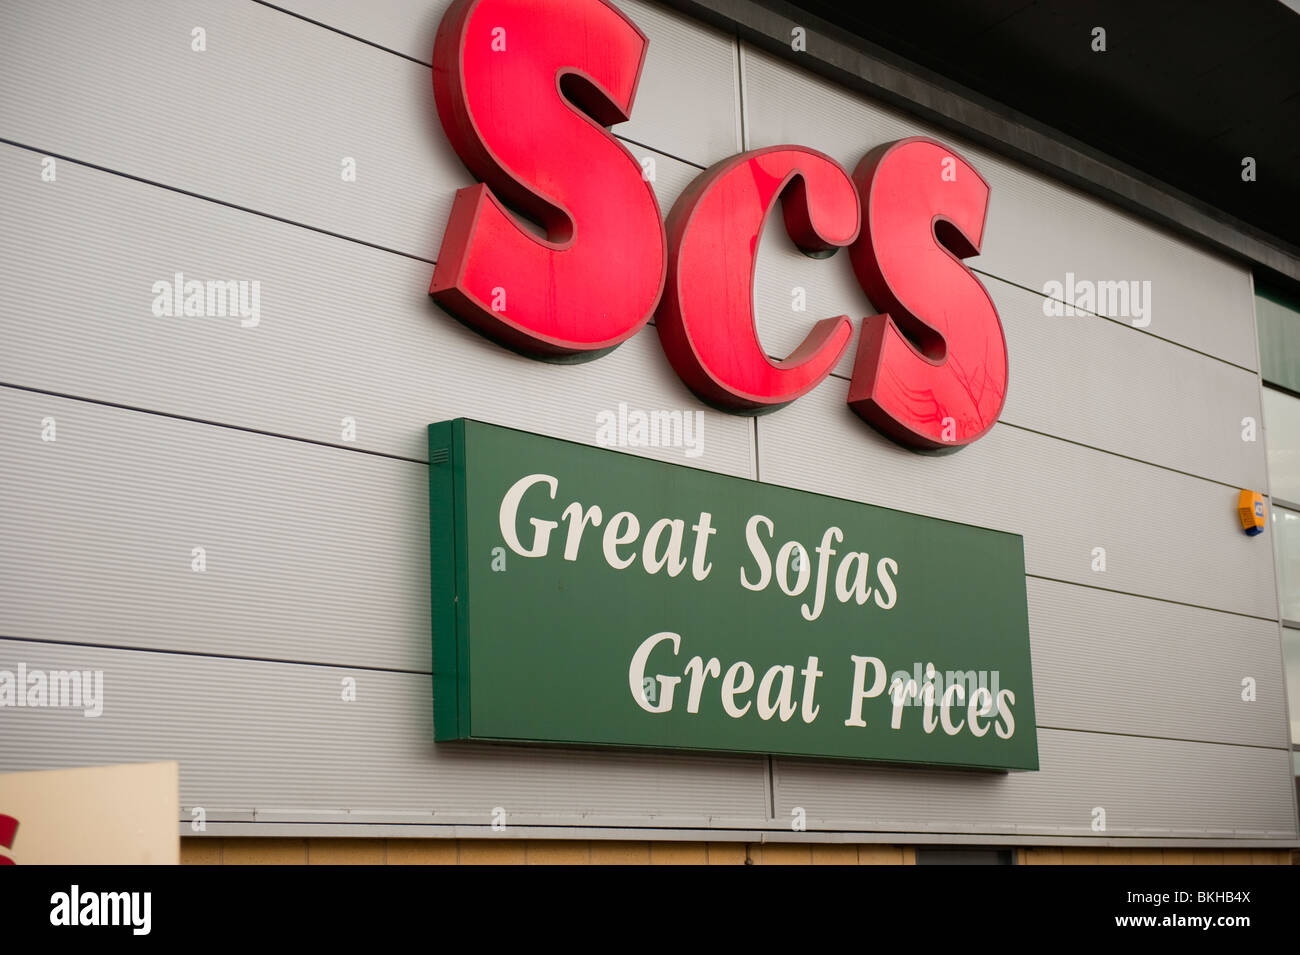 SCS Great Sofas Great Prices UK - Stock Image